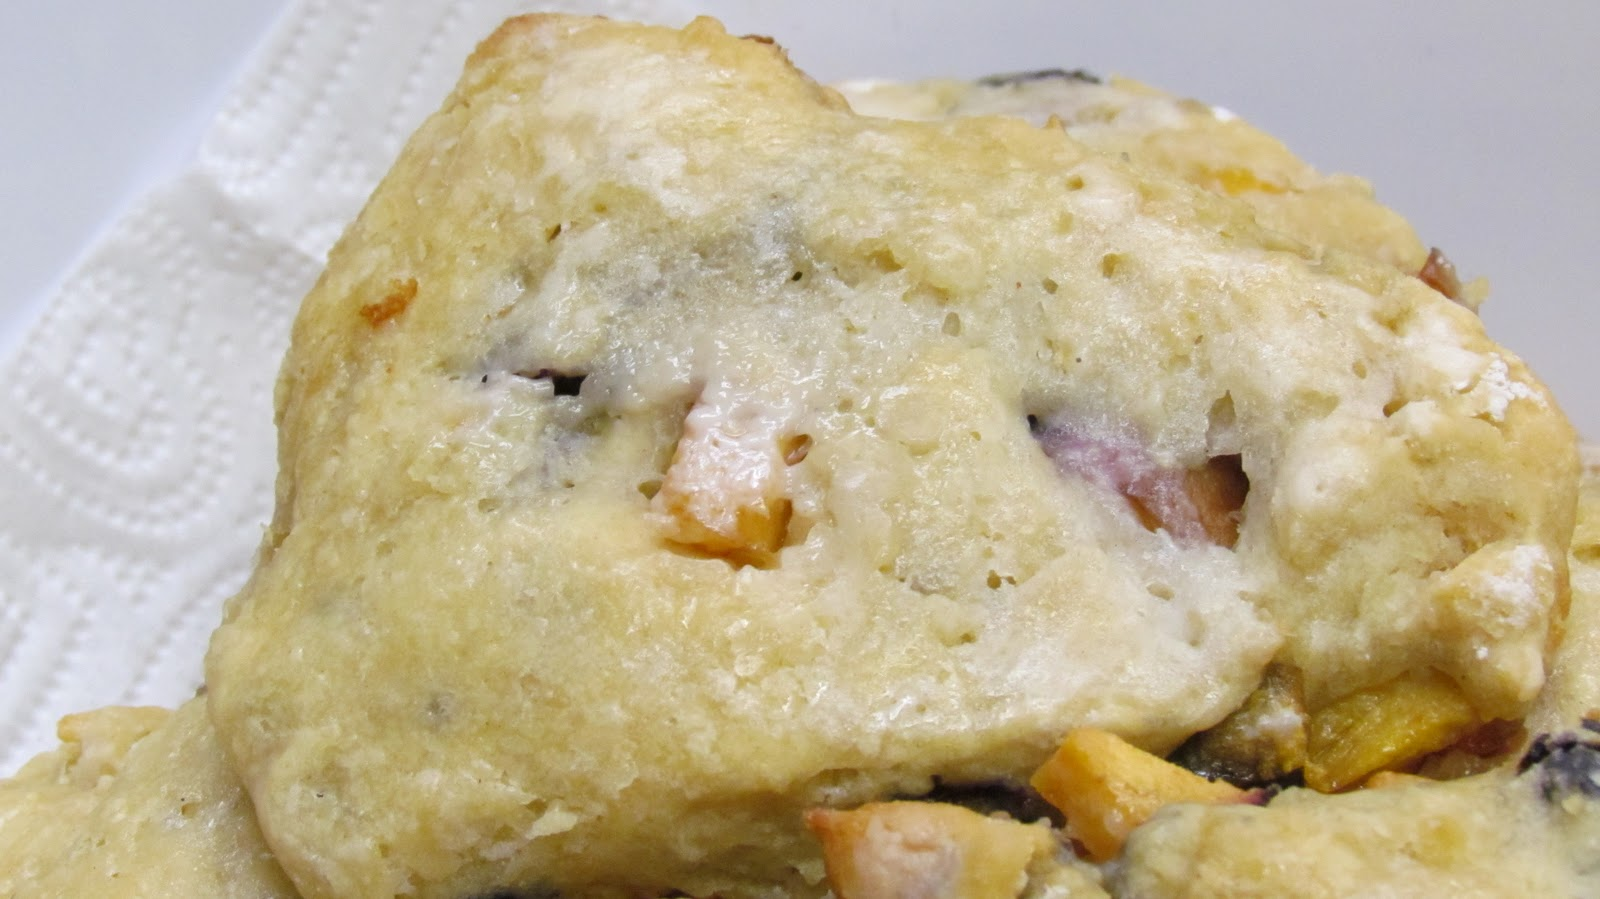 ... Sustenance: Peach Ginger Scones with Dried Cherries - Welcoming Guests